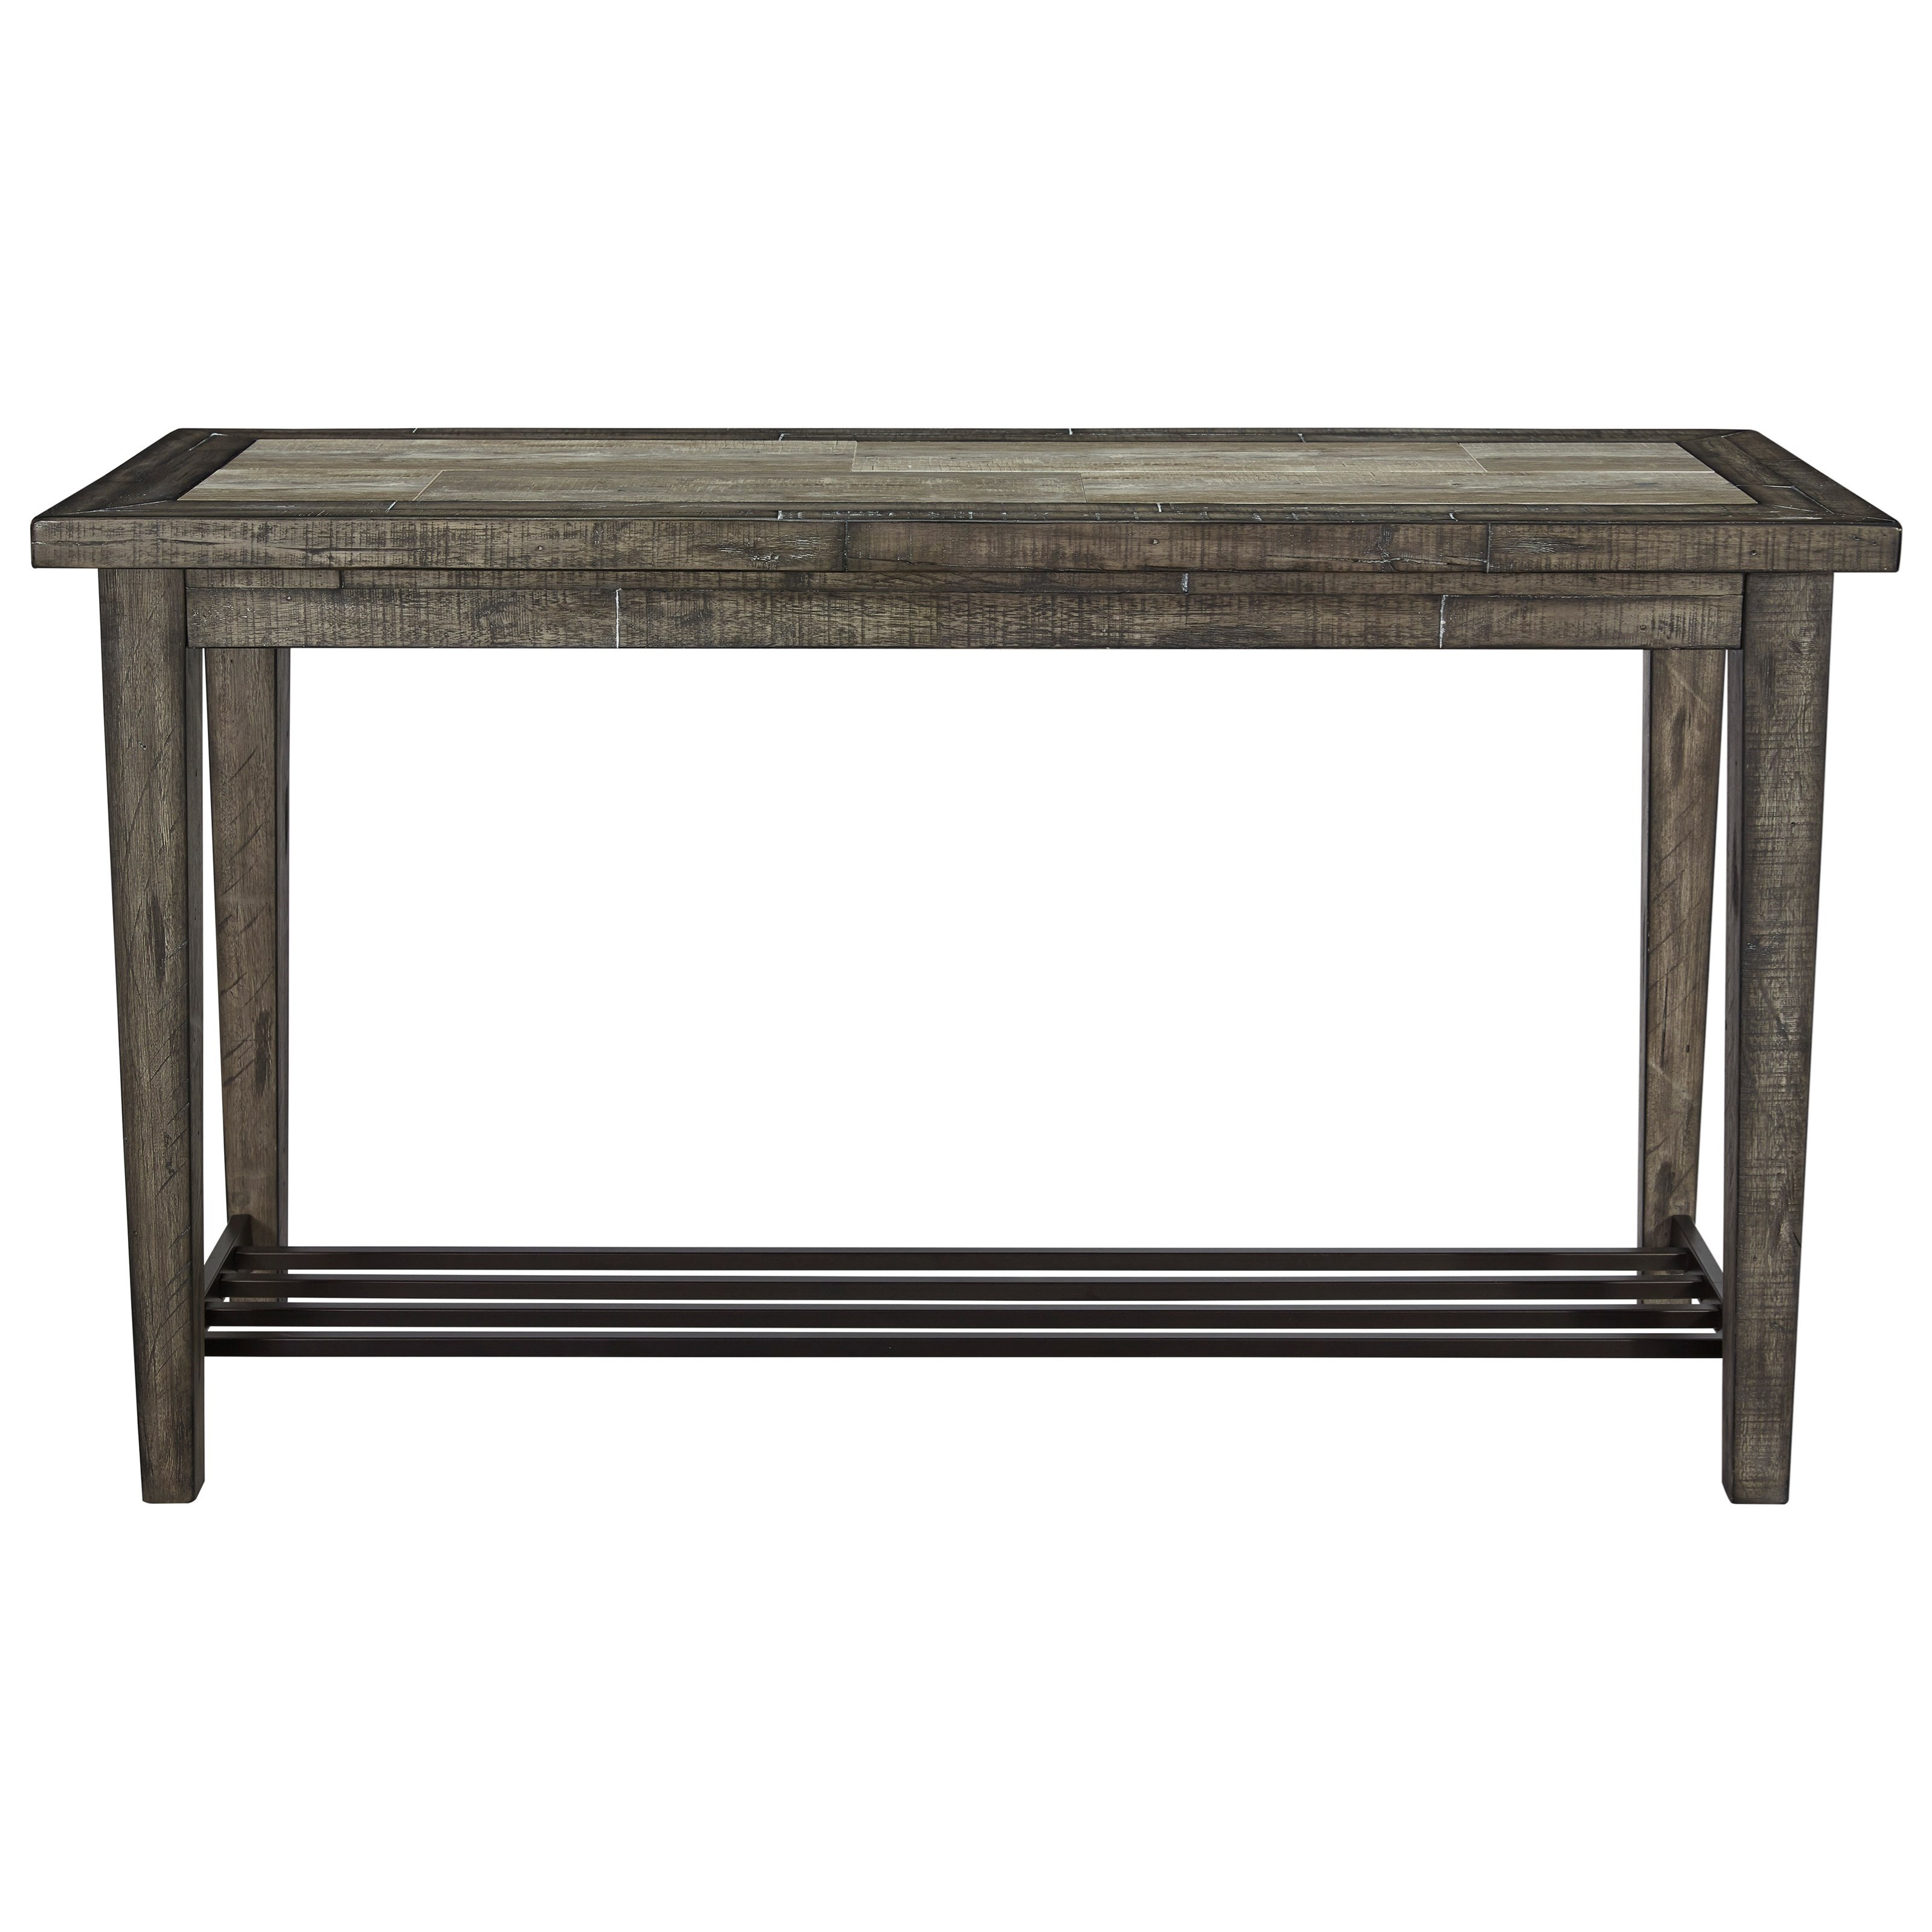 Remarkable Mavenry Rustic Sofa Table With Ceramic Tile Top By Ashley Signature Design At Rooms And Rest Download Free Architecture Designs Ponolprimenicaraguapropertycom